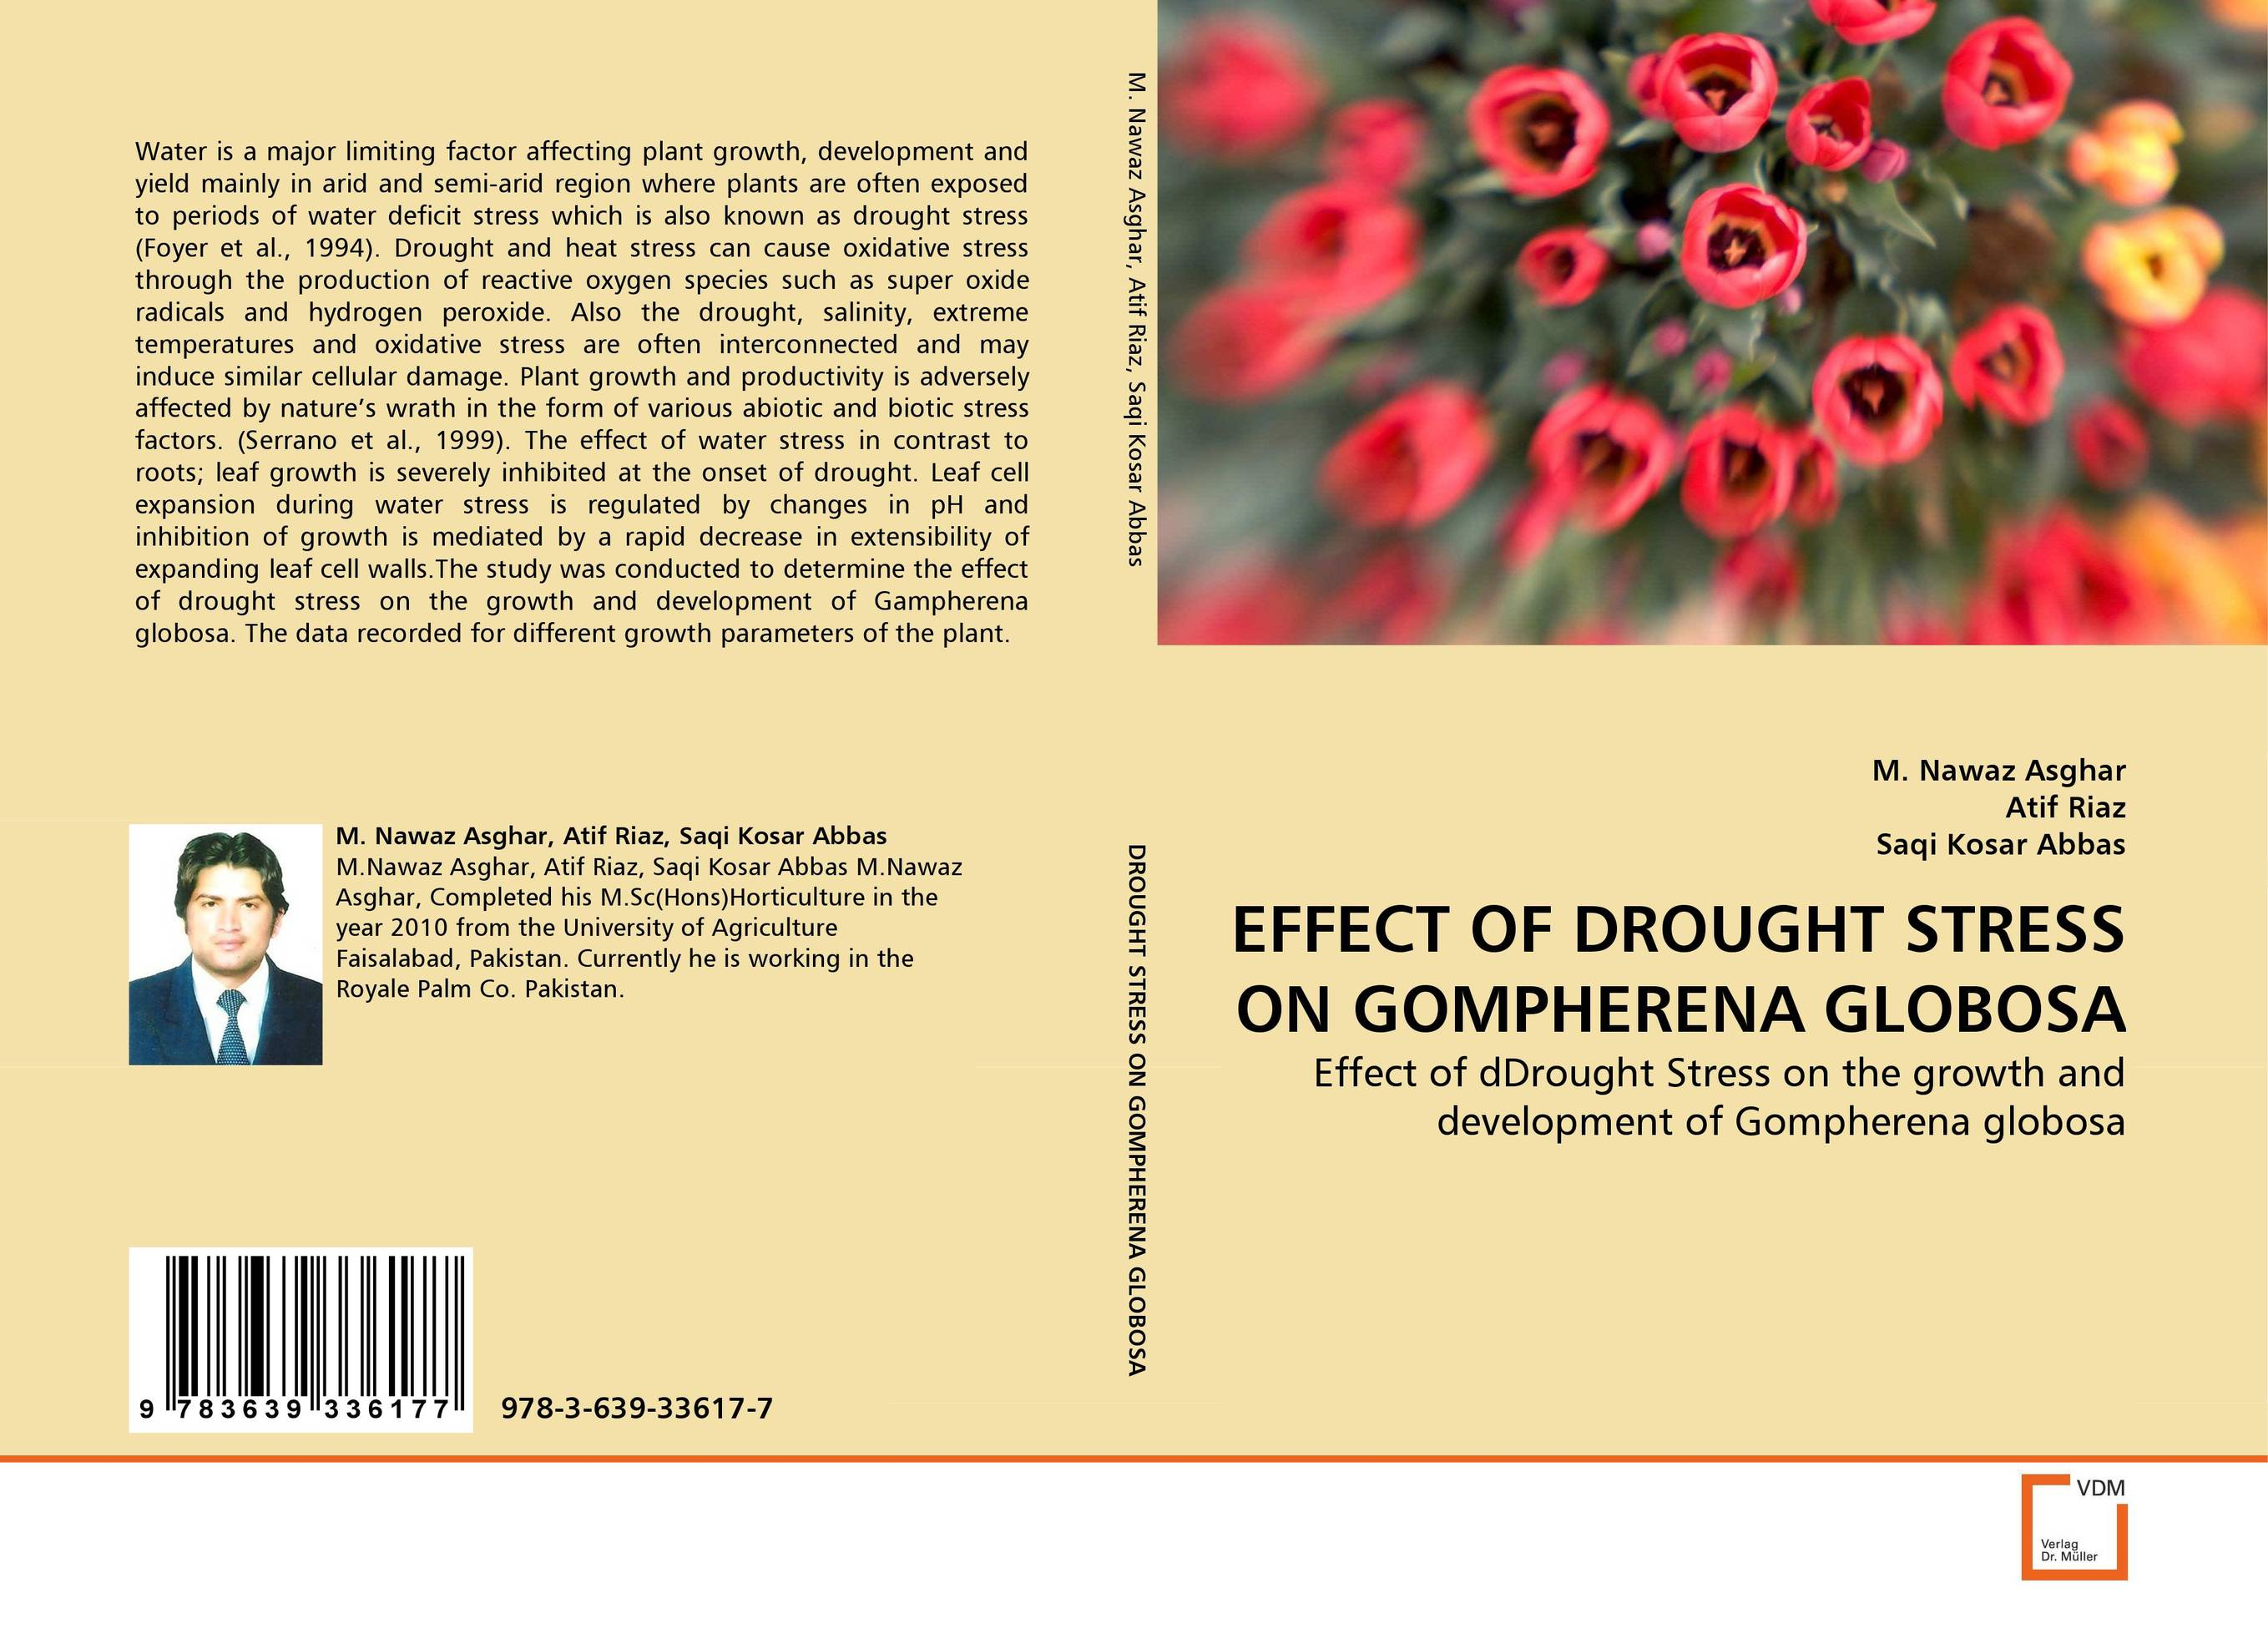 EFFECT OF DROUGHT STRESS ON GOMPHERENA GLOBOSA